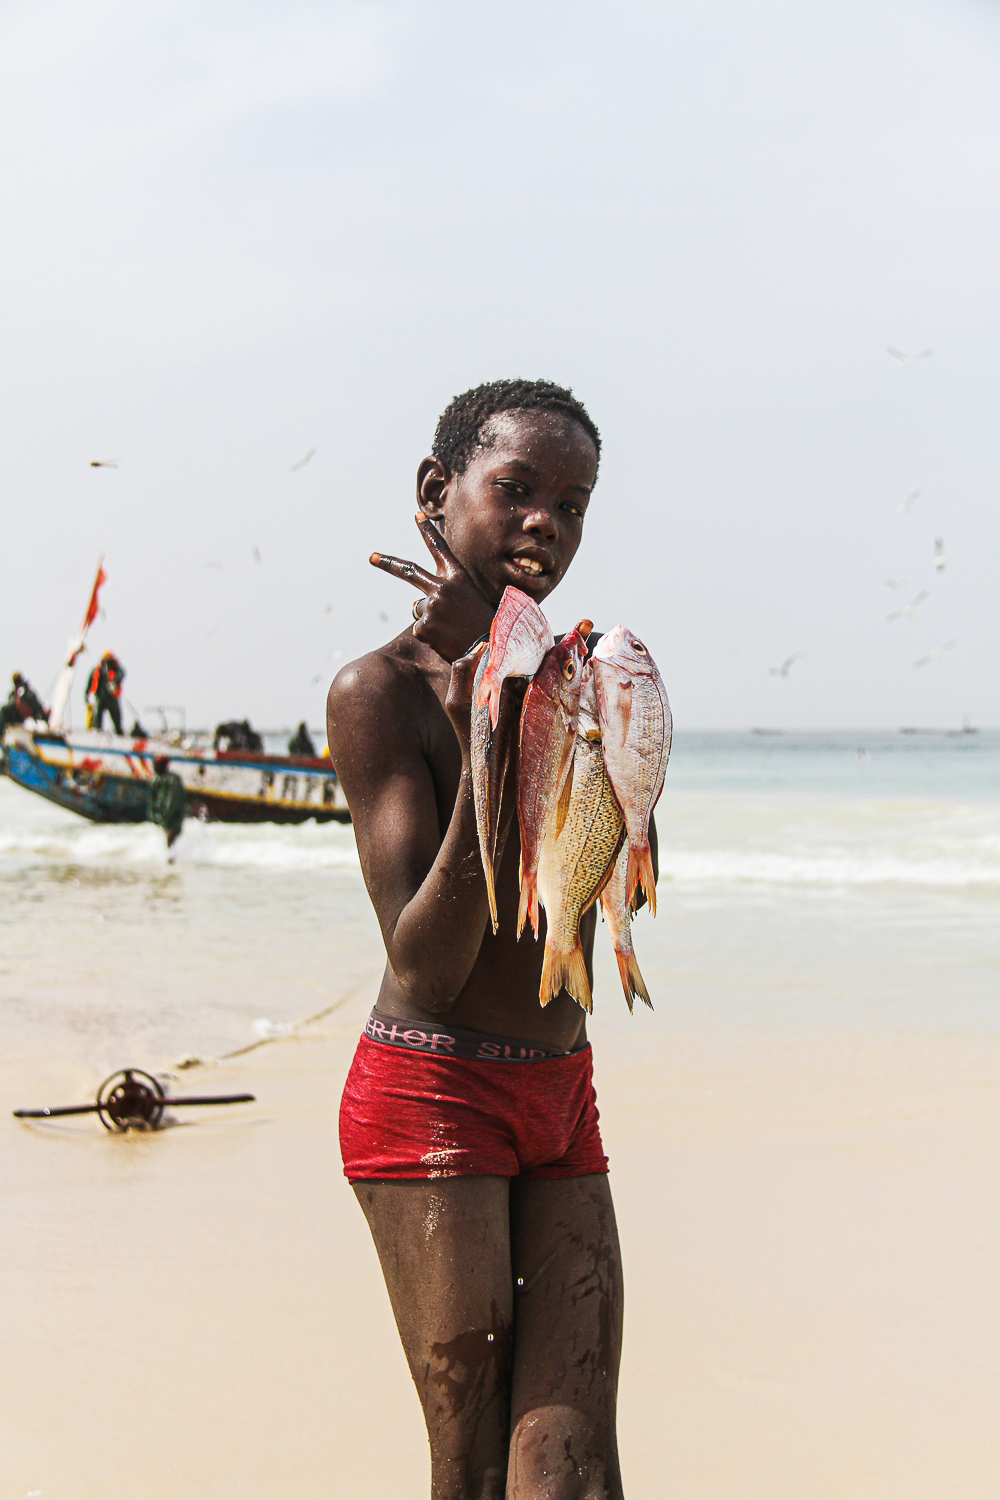 Closer to the market, there are people who hurry back and forth with trays of fish, which they sort, gut, fillet and lay out on large trestles to dry.. There are women who sell snacks, cook and catch up with the latest news. Children playing, young students meeting and having fun together.